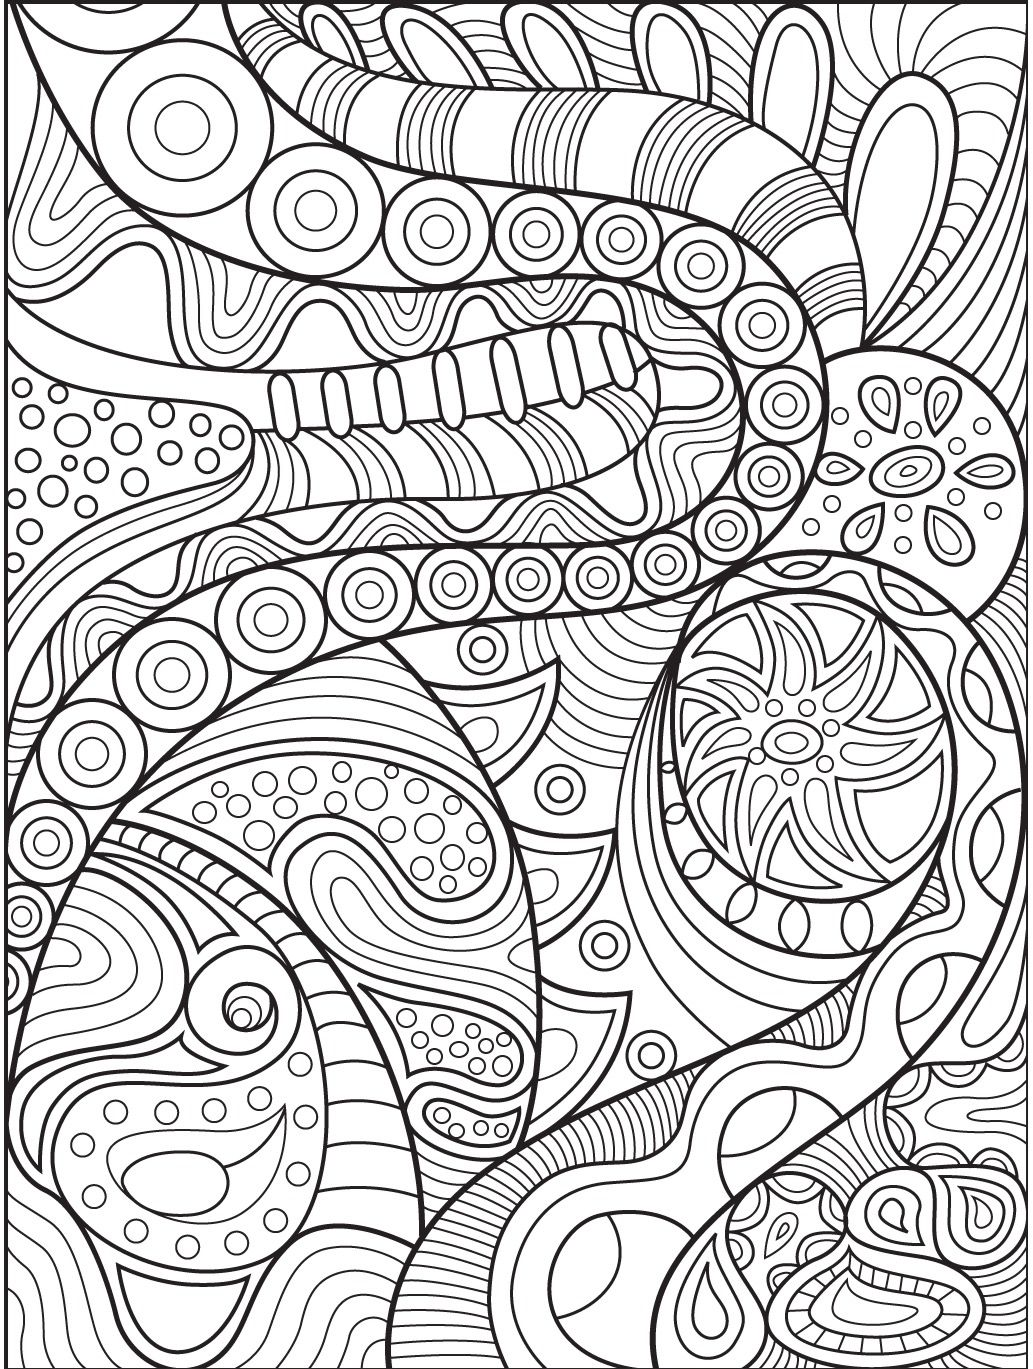 abstract coloring page # 7